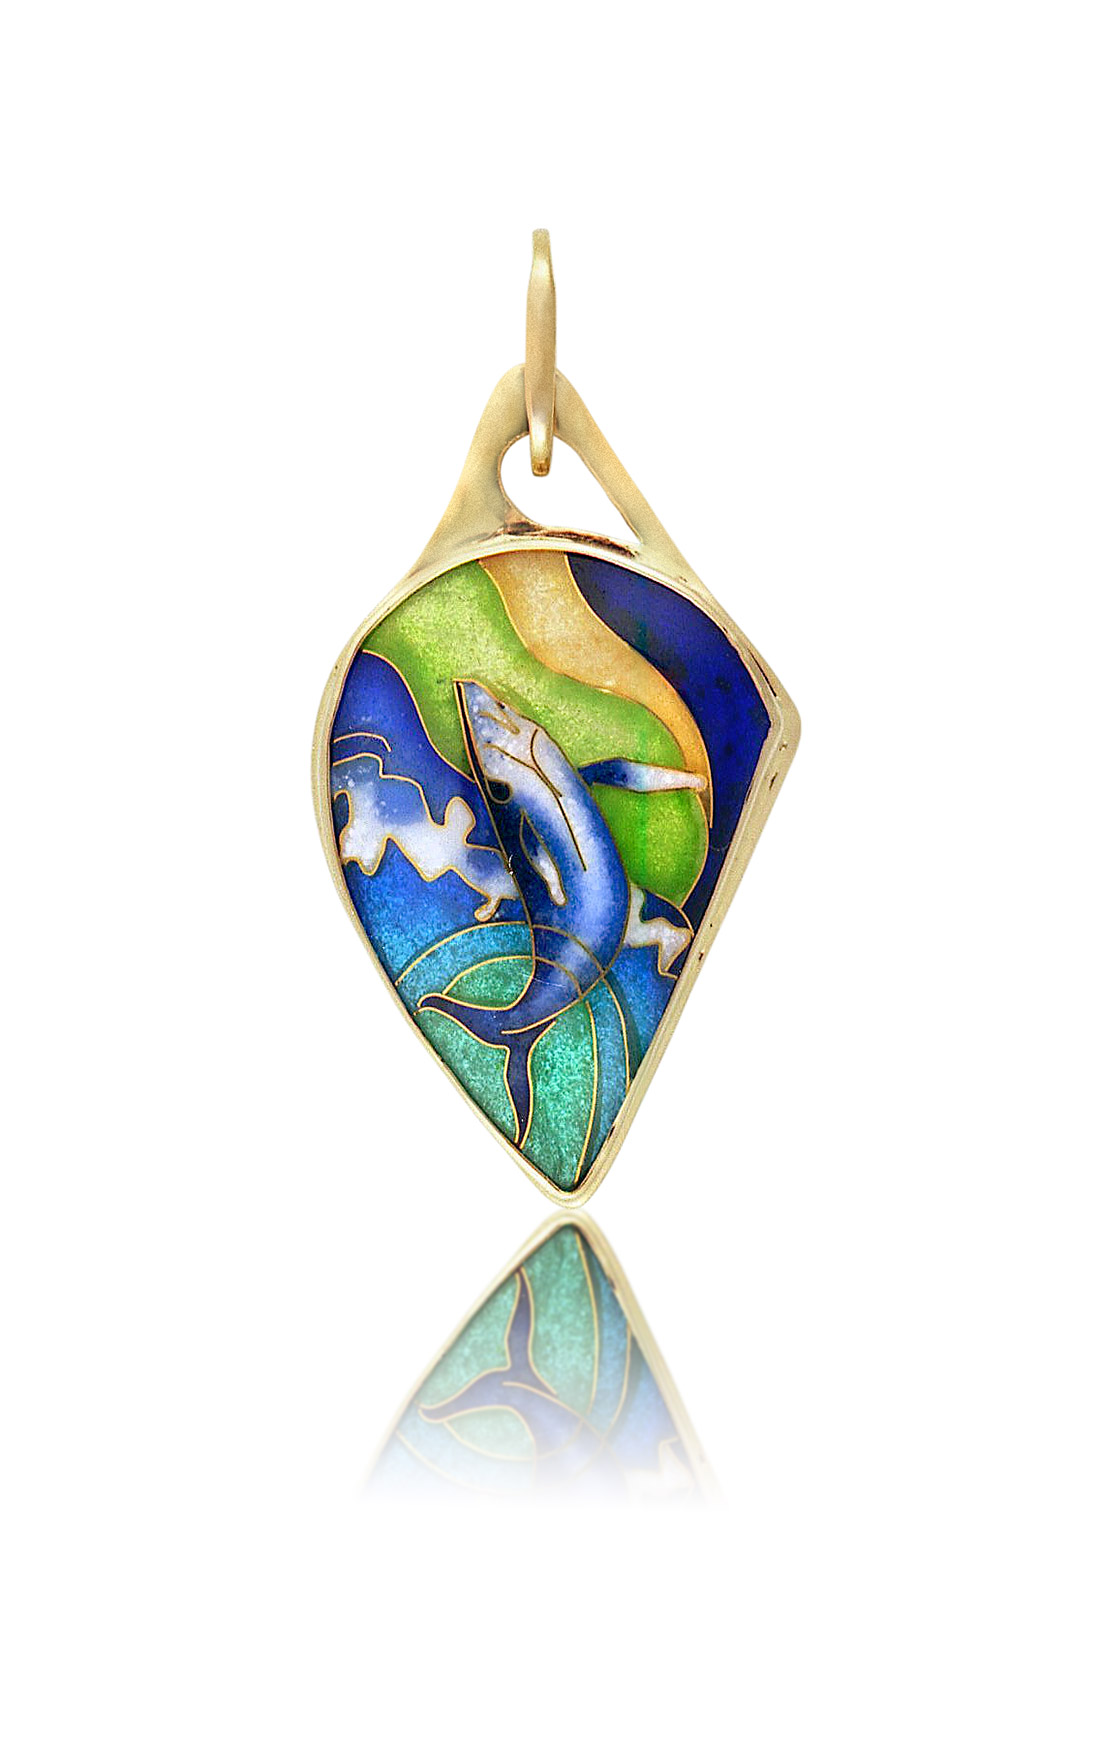 Breaching Whale | Cloisonne jewelry | Enamel jewelry | Unique jewelry designs